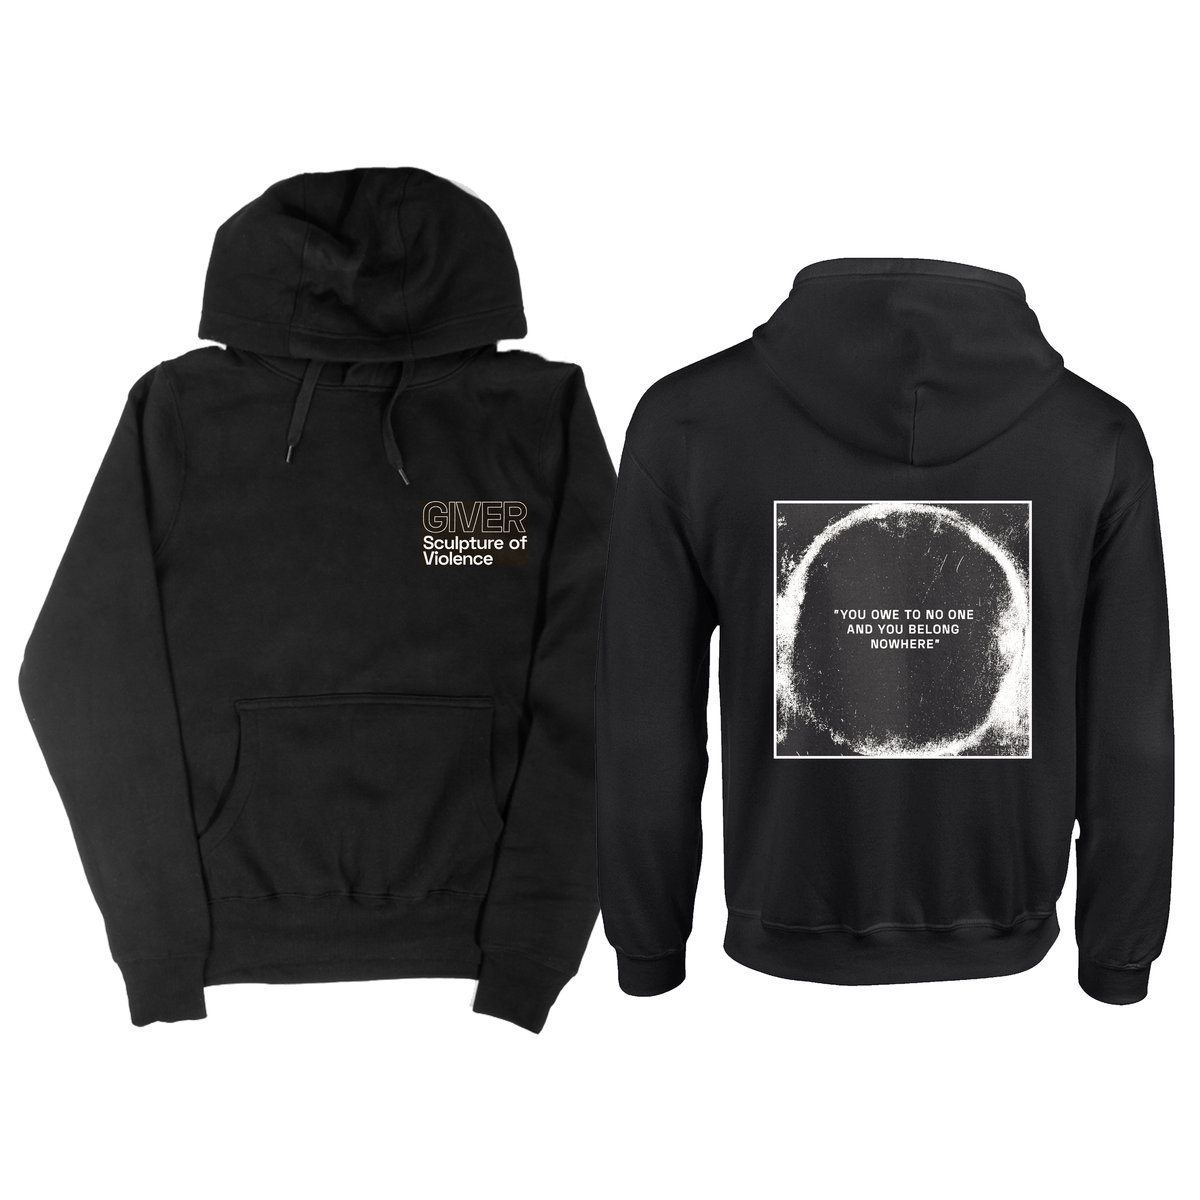 Giver - Sculpture Of Violence hoodie PREORDER